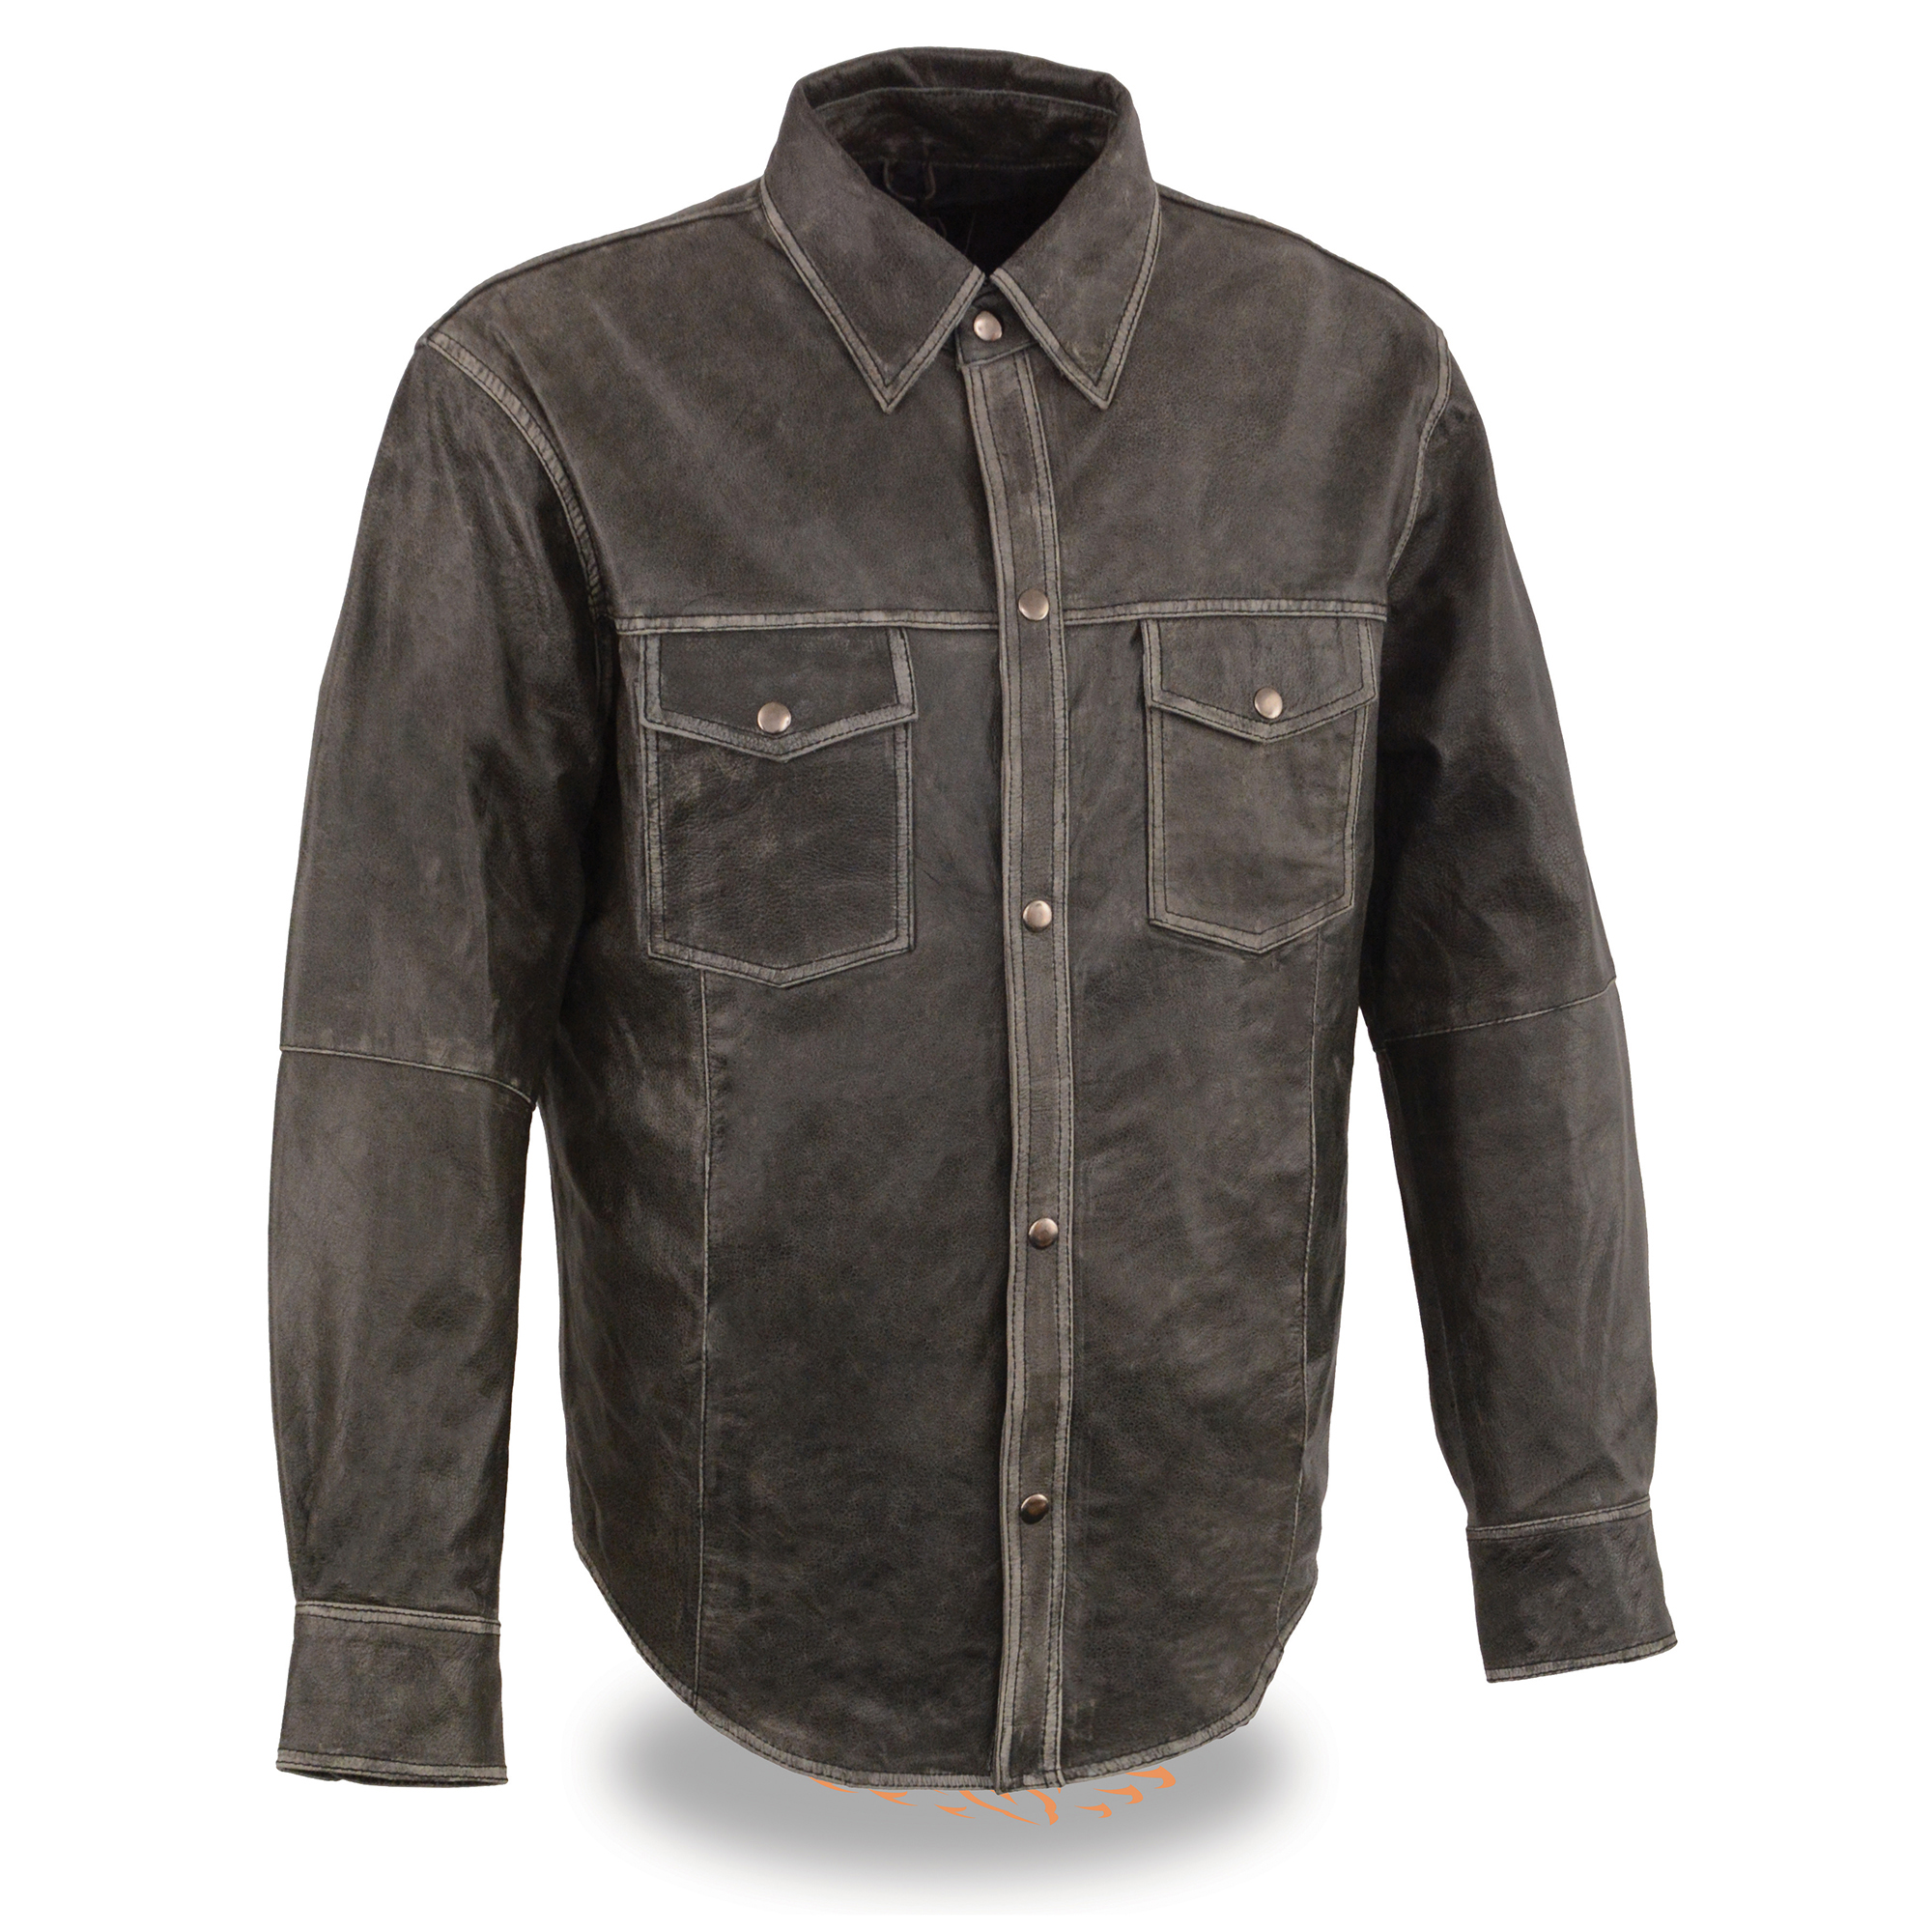 7ddad5fb3 Men's Distressed Gray Lightweight Leather Snap Front Shirt